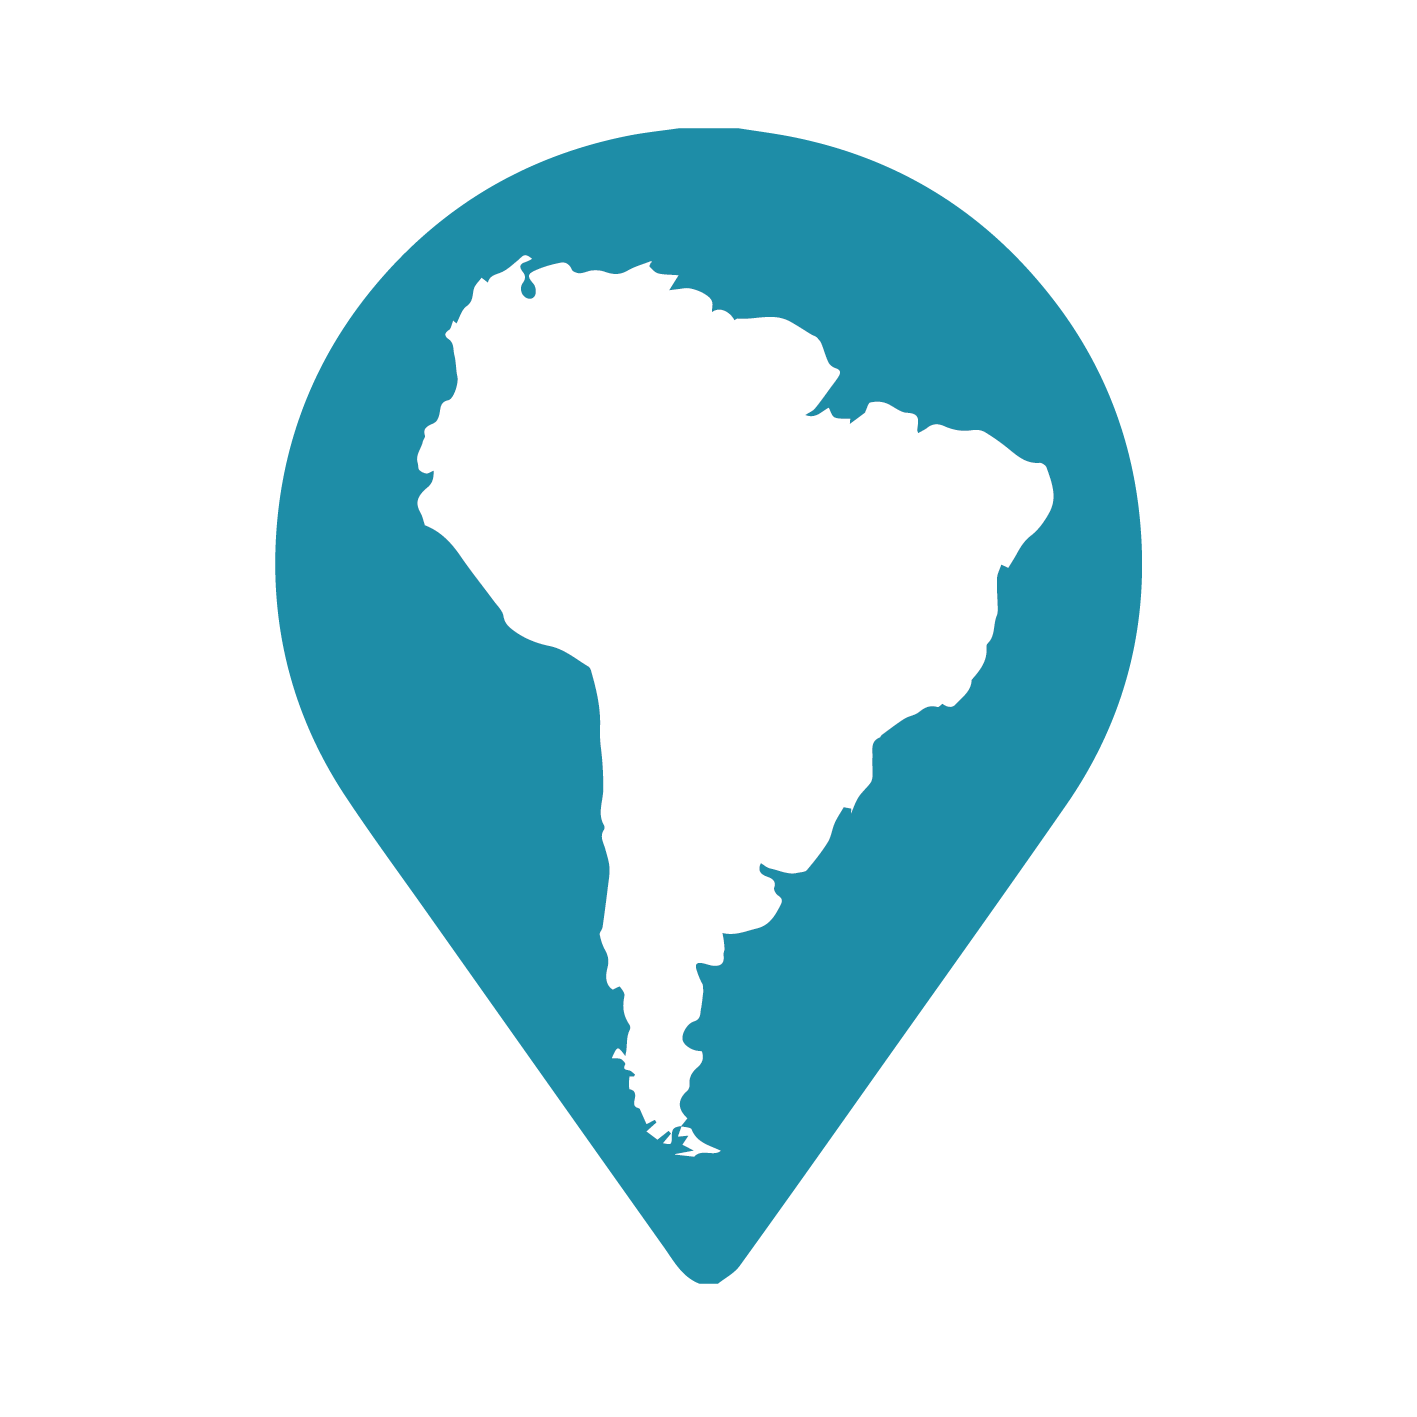 Traveling to South America logo